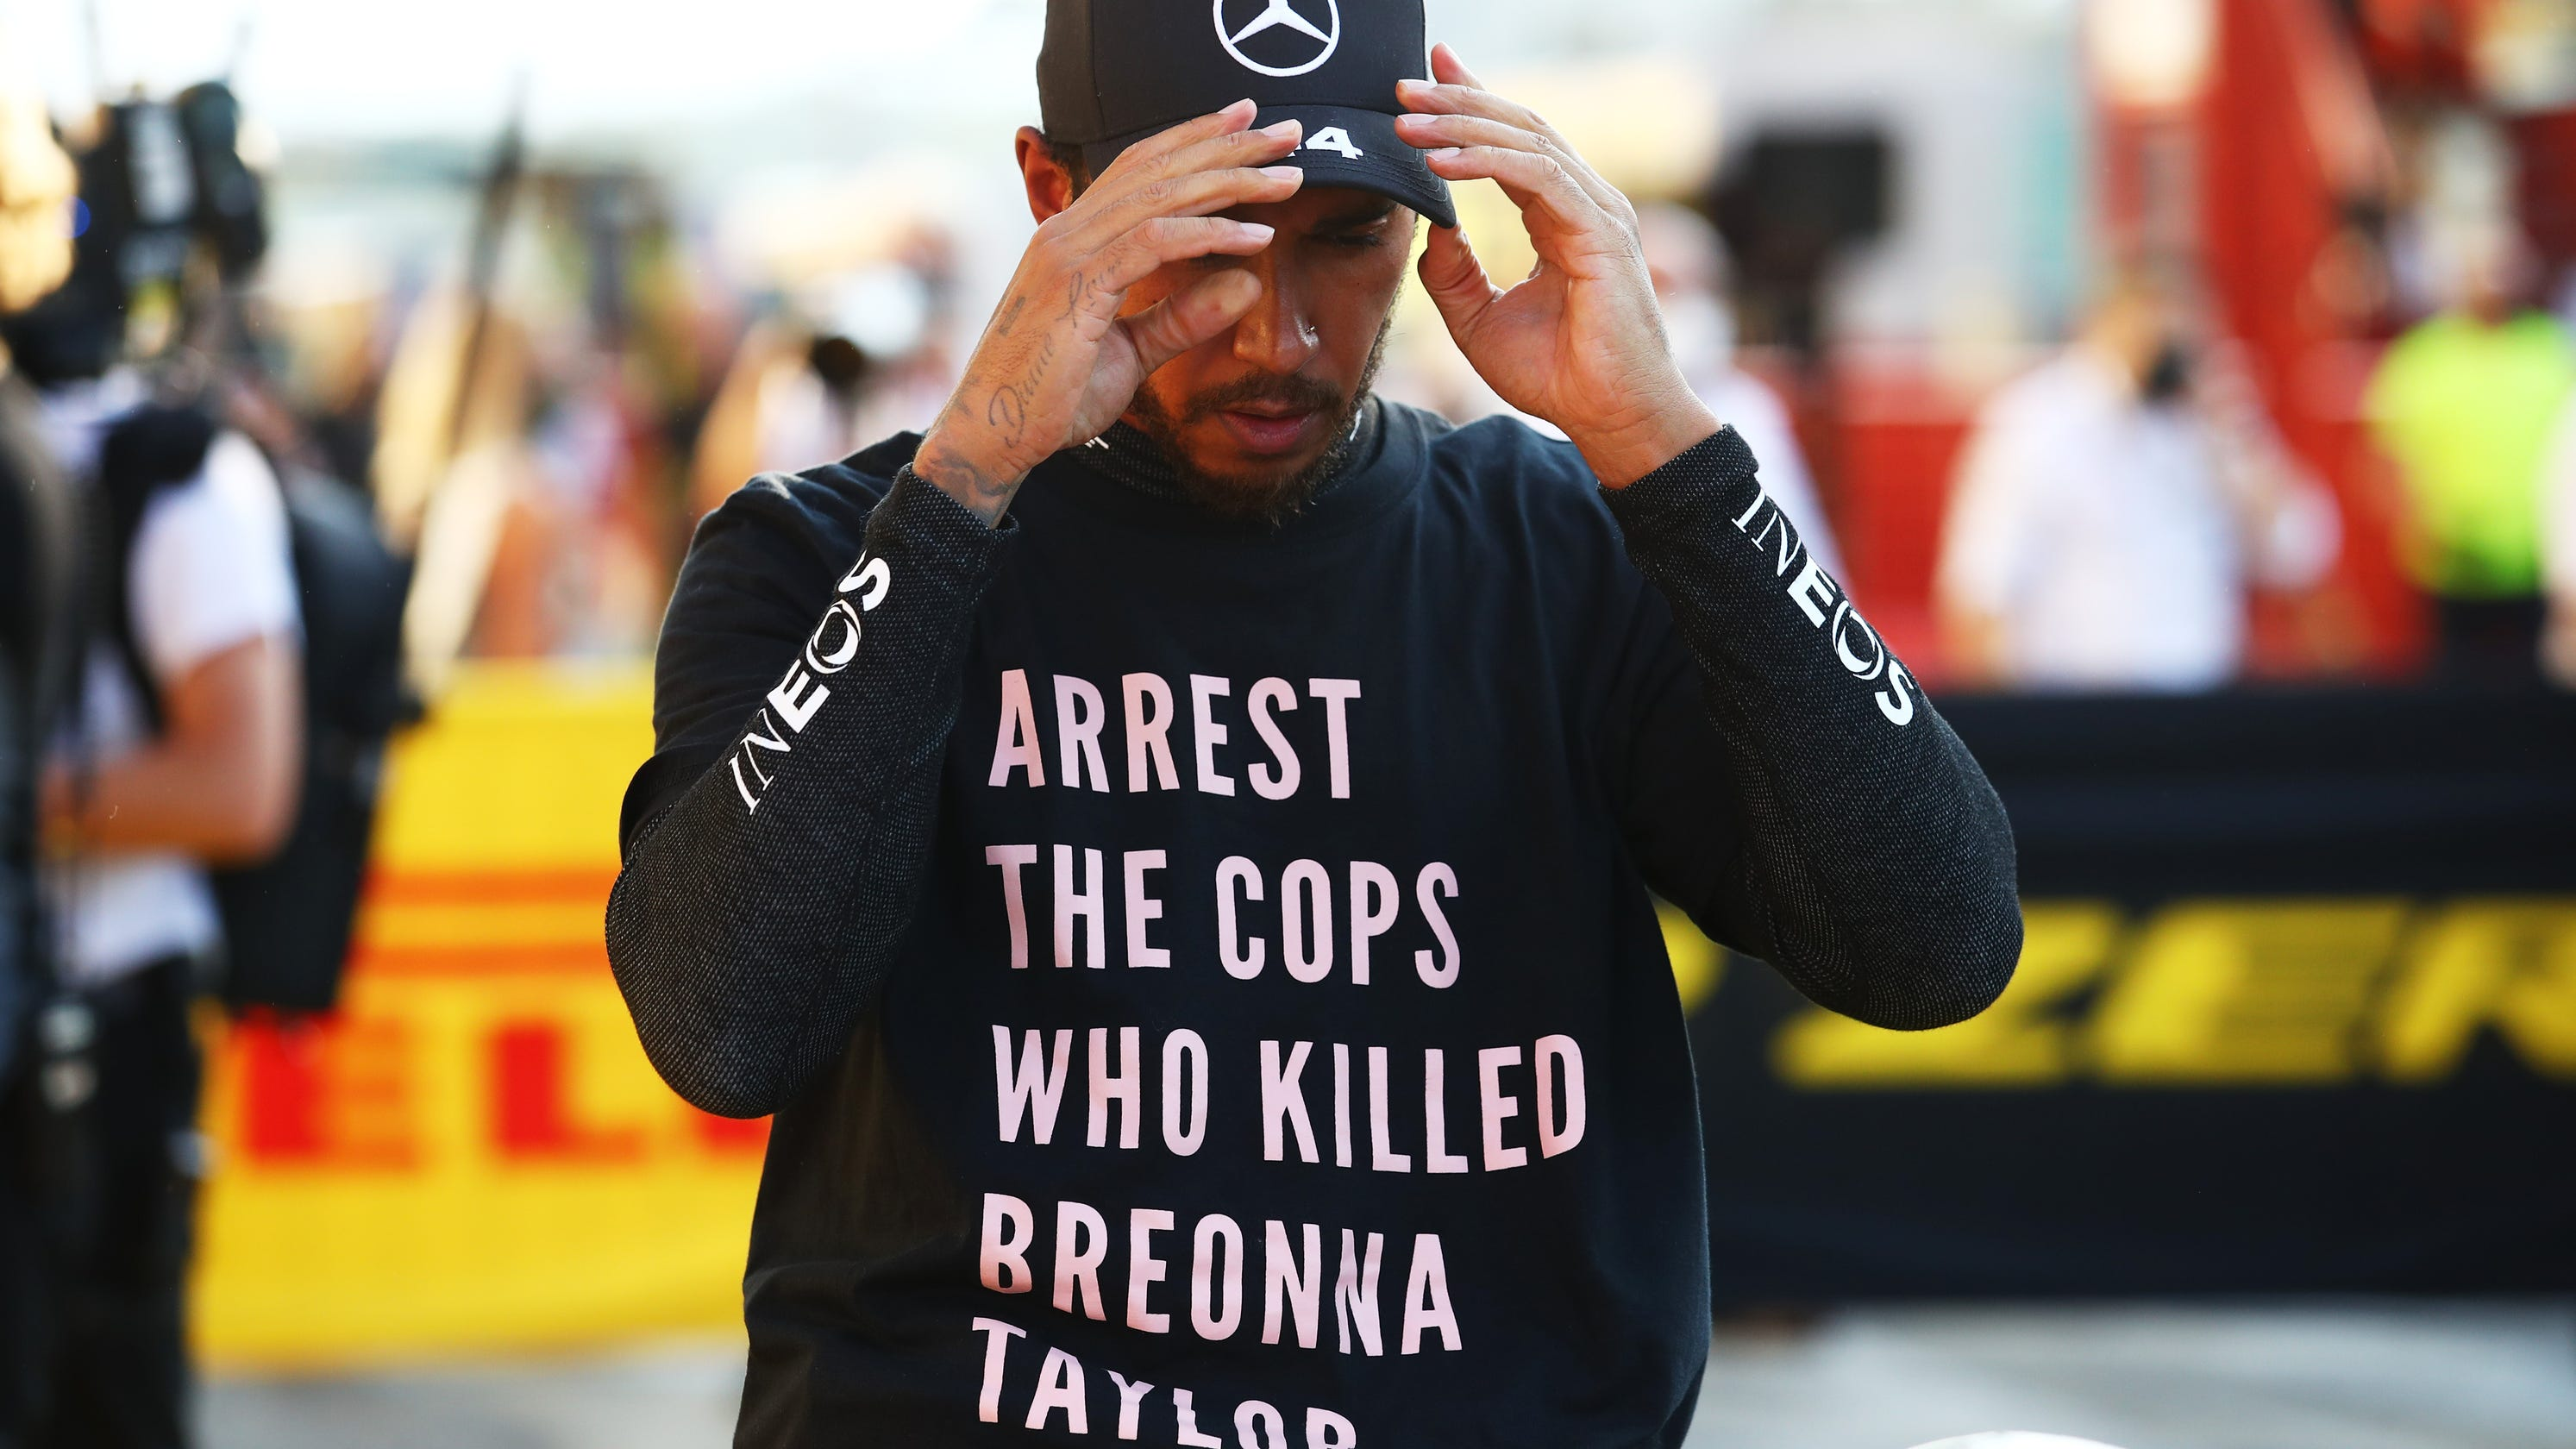 Formula 1 driver Lewis Hamilton wears shirt calling for arrest of cops who shot Breonna Taylor